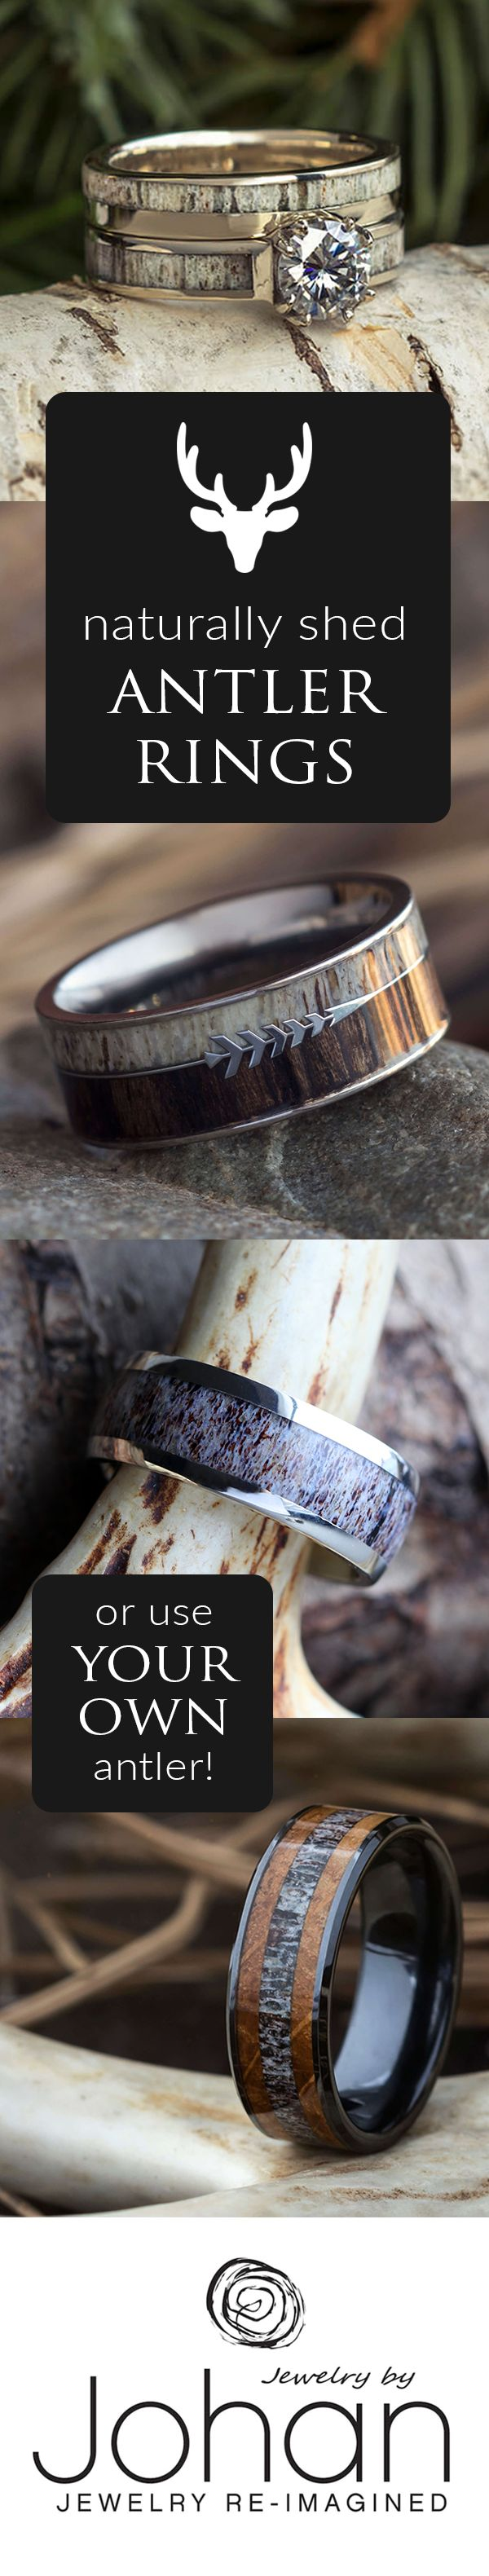 Browse hundreds of naturally shed deer antler wedding rings, or create your own, custom wedding band from the antler off your latest trophy buck! #weddingring